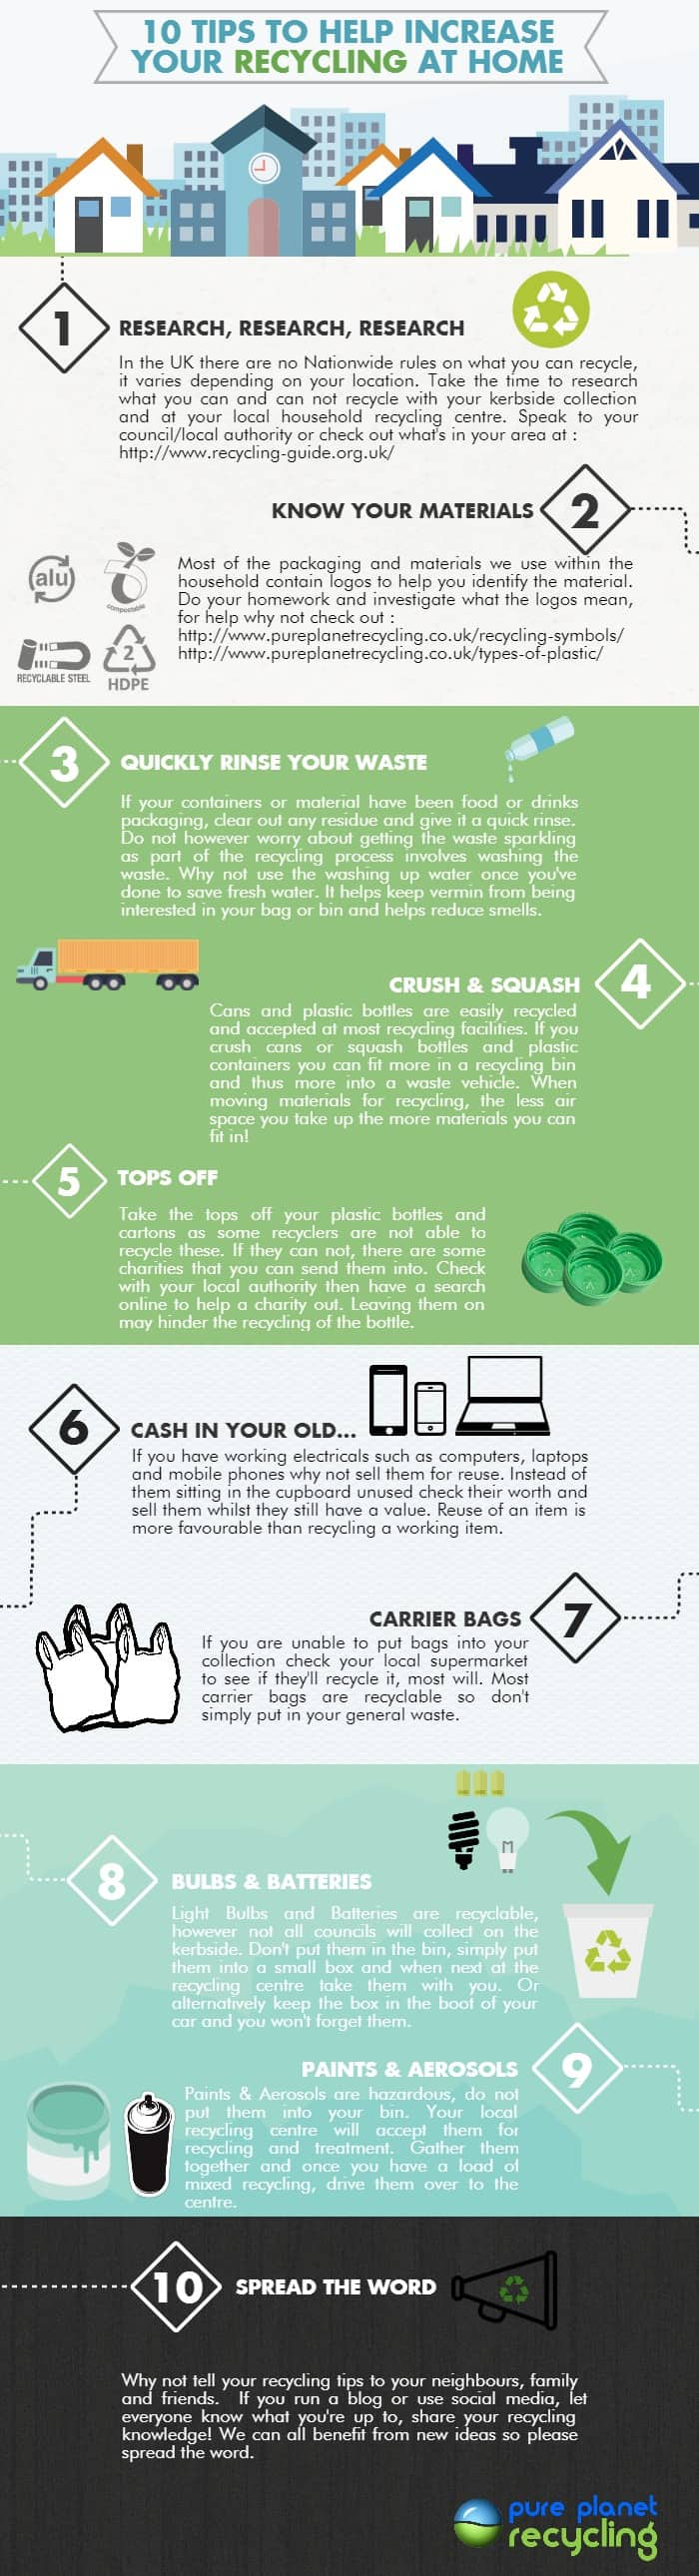 10-Tips-To-Recycle-More